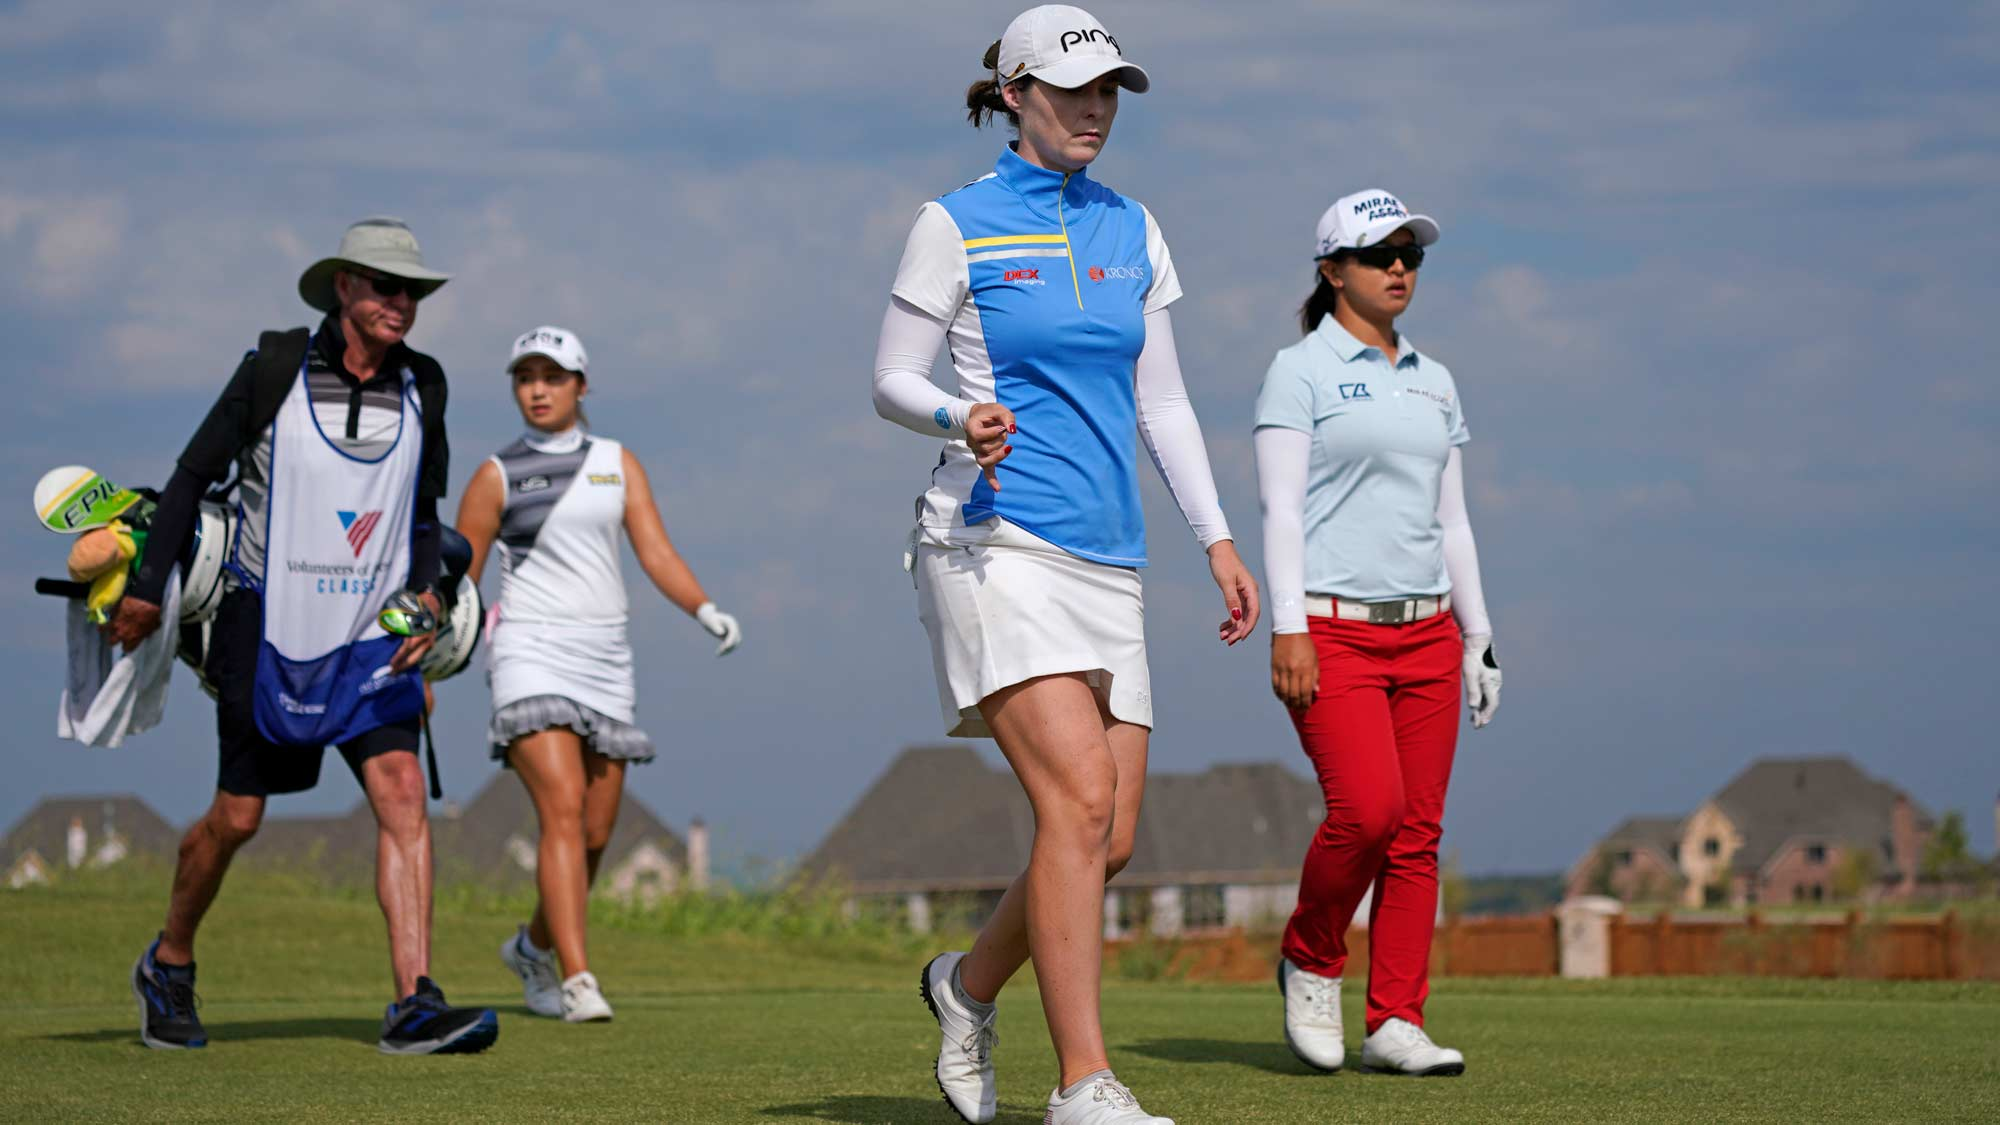 Brittany Altomare, Sei Young Kim and Jeongeun Lee6 Walking at the VOA Classic